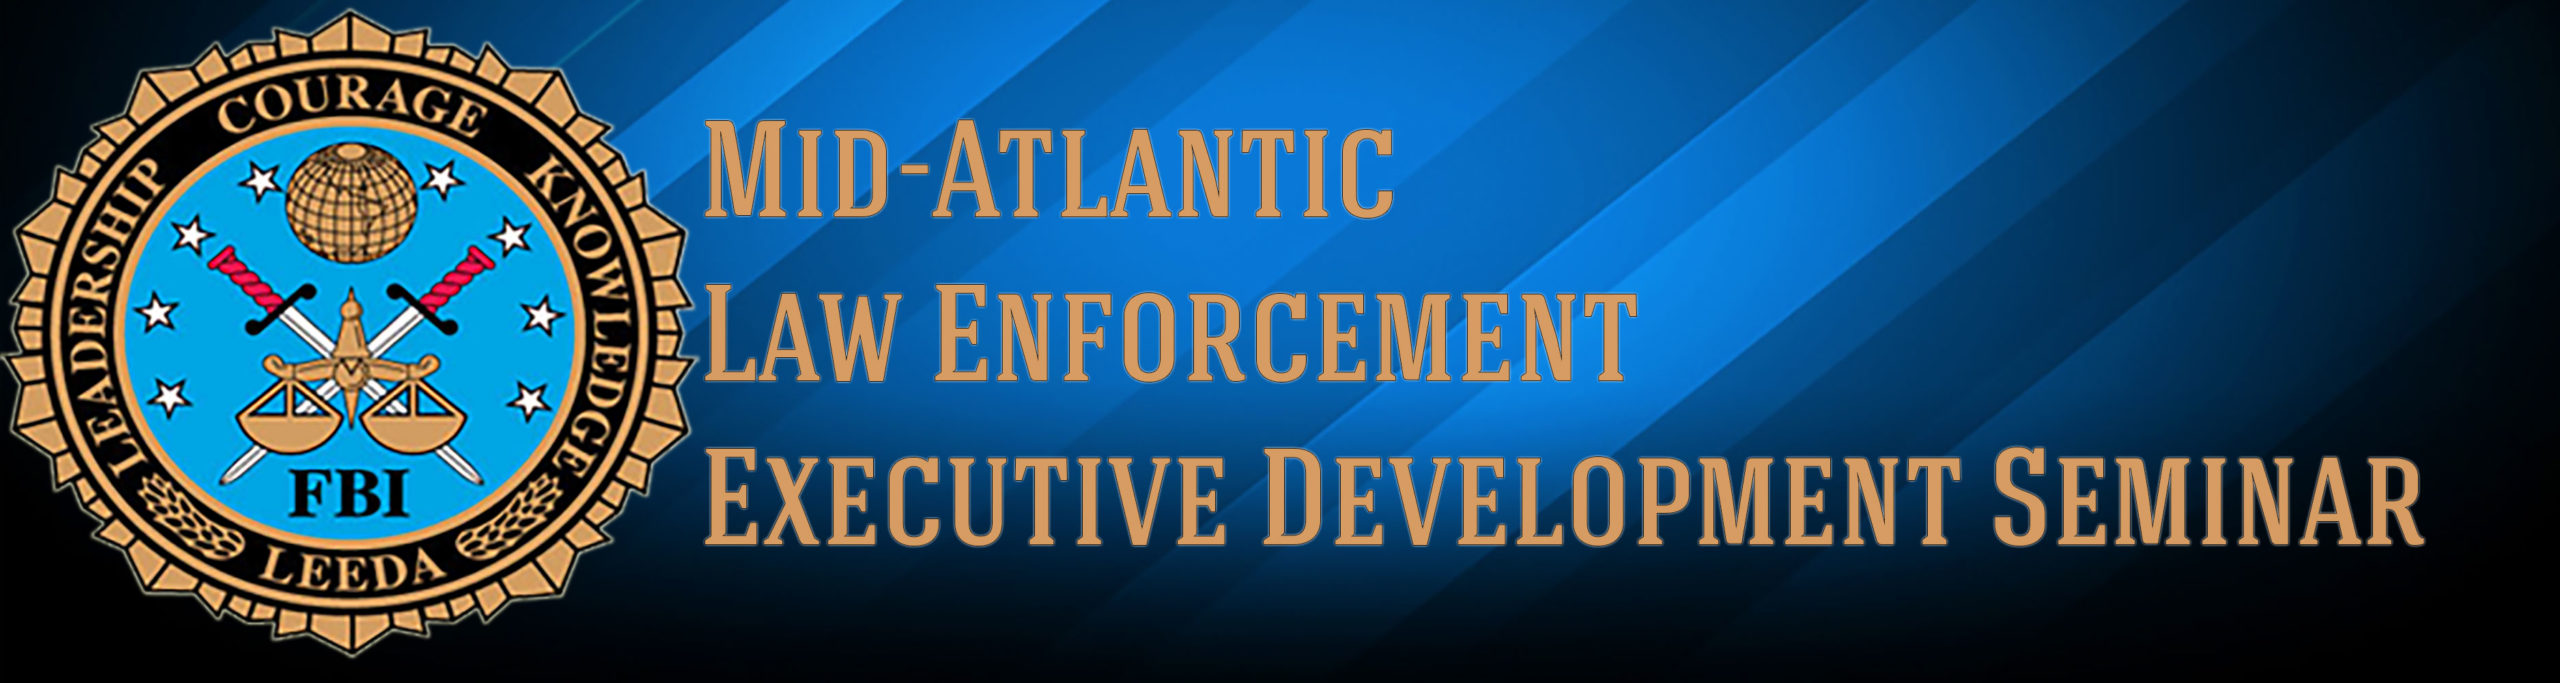 Mid-Atlantic Law Enforcement Executive Development Seminar